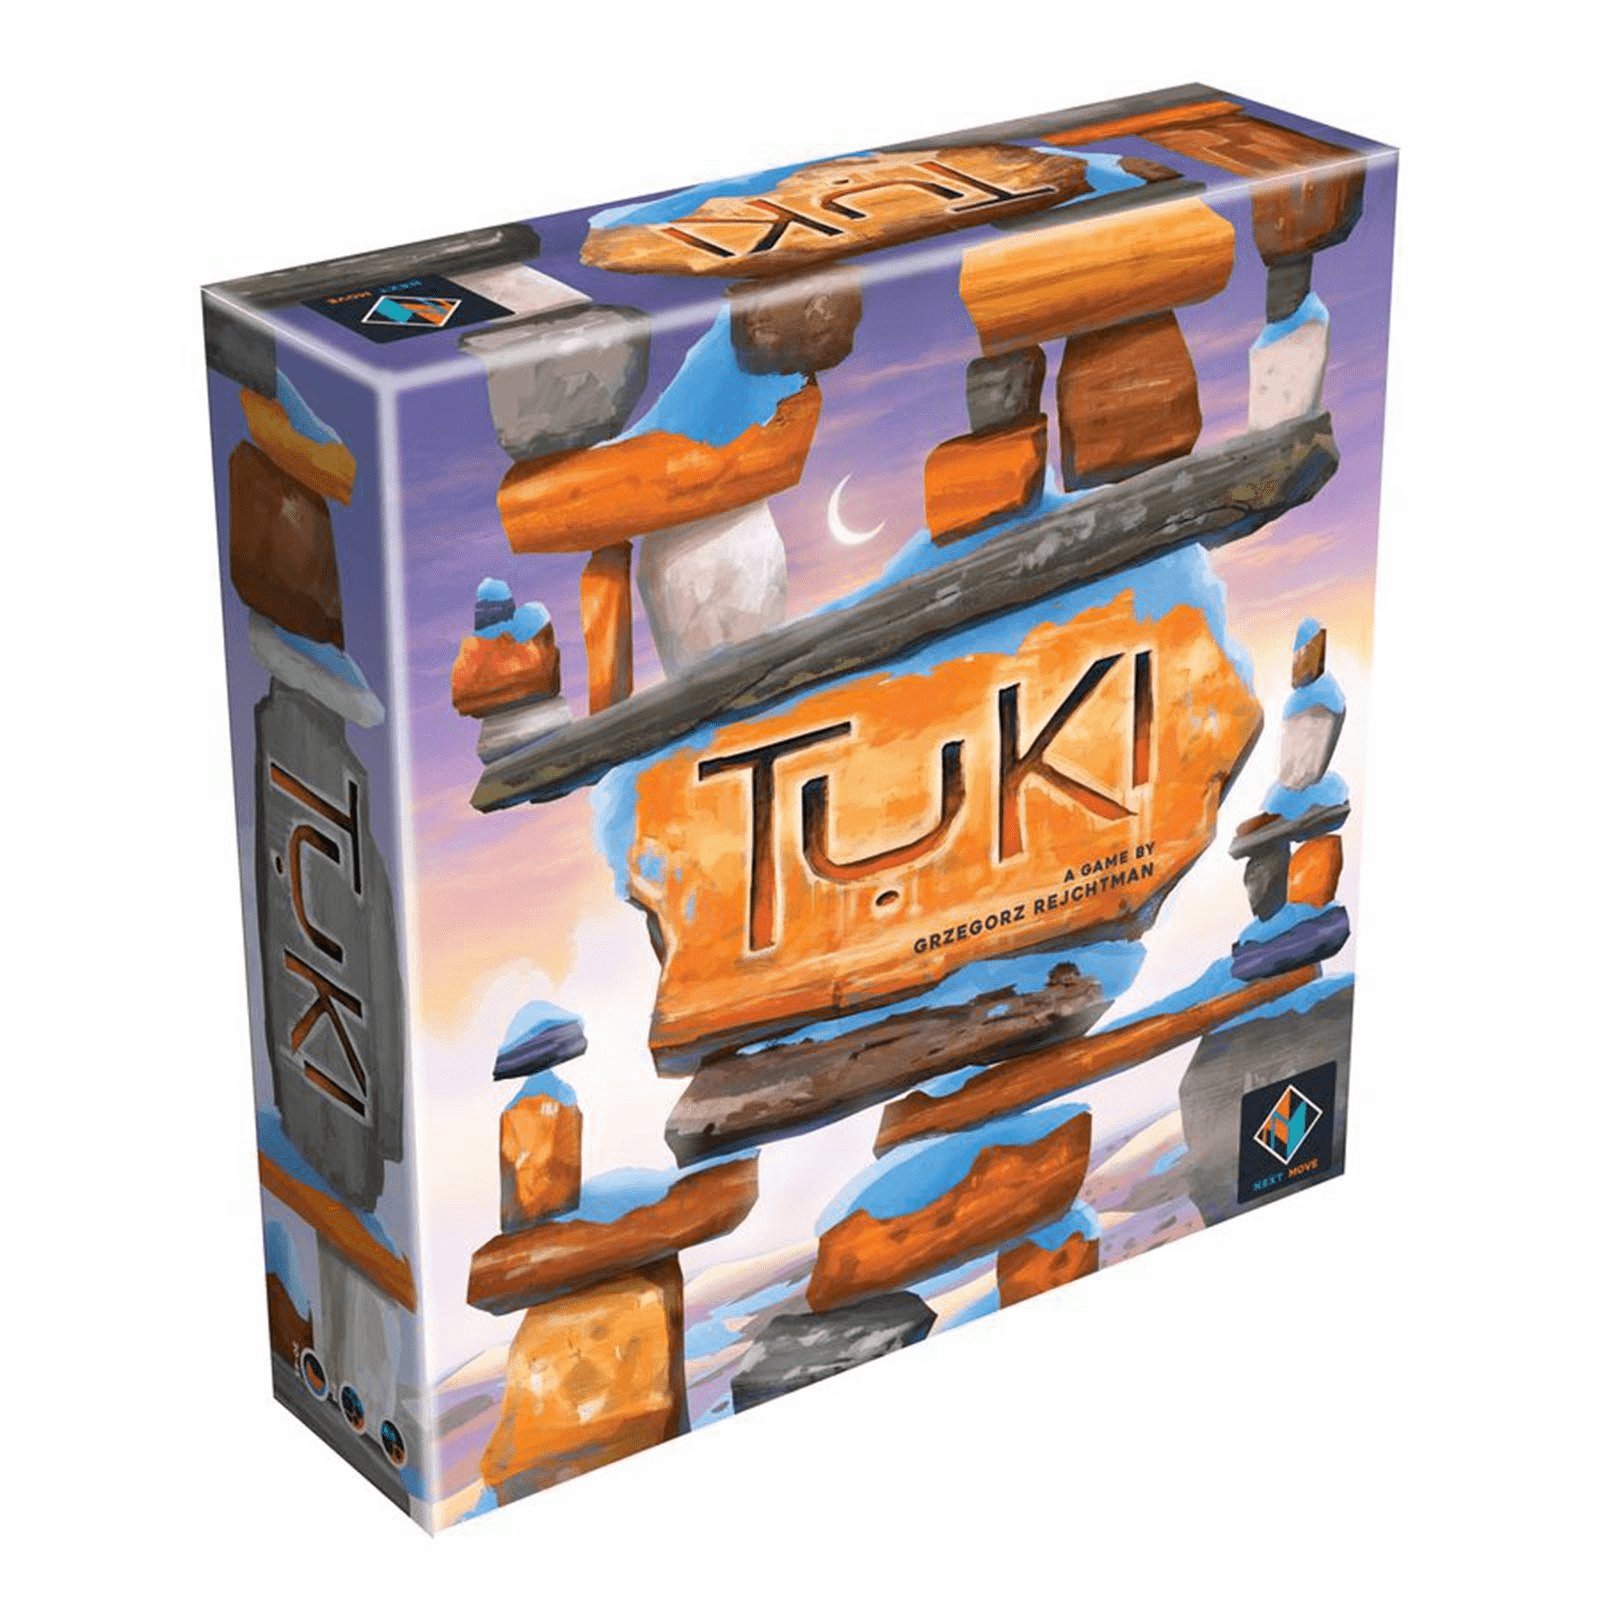 Tuki | By The Board Games & Entertainment